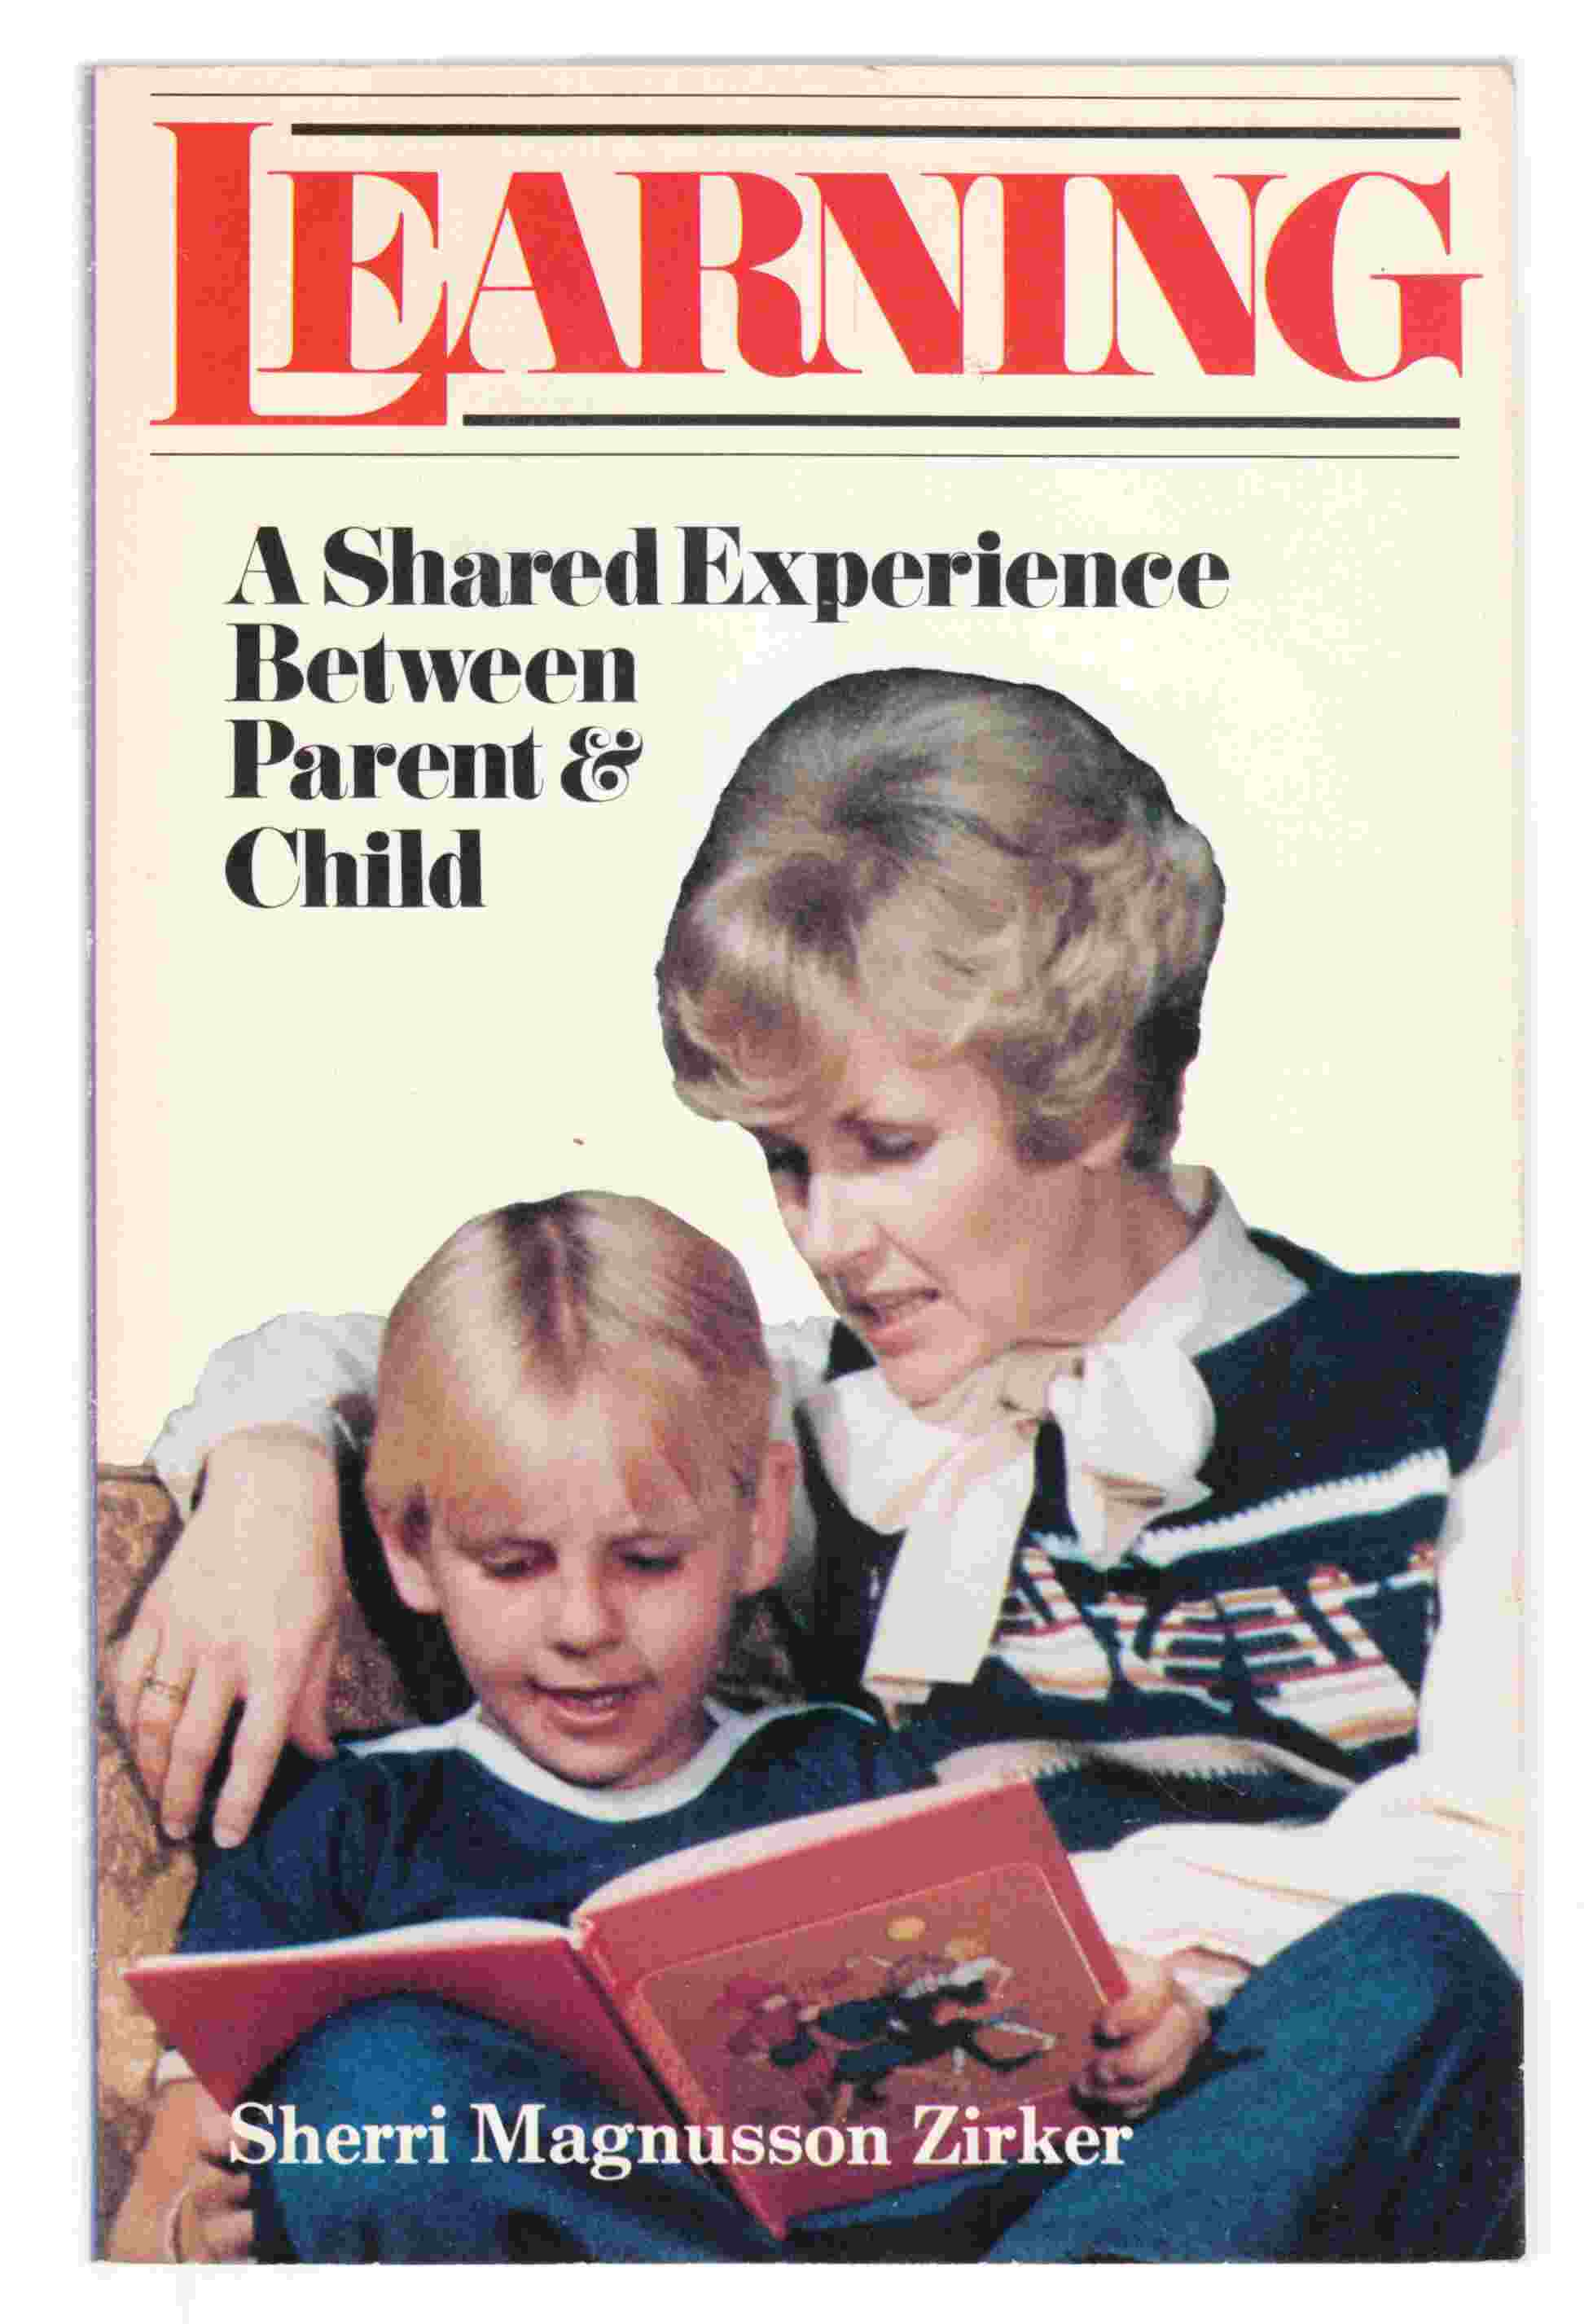 Image for Learning A Shared Experience between Parent & Child